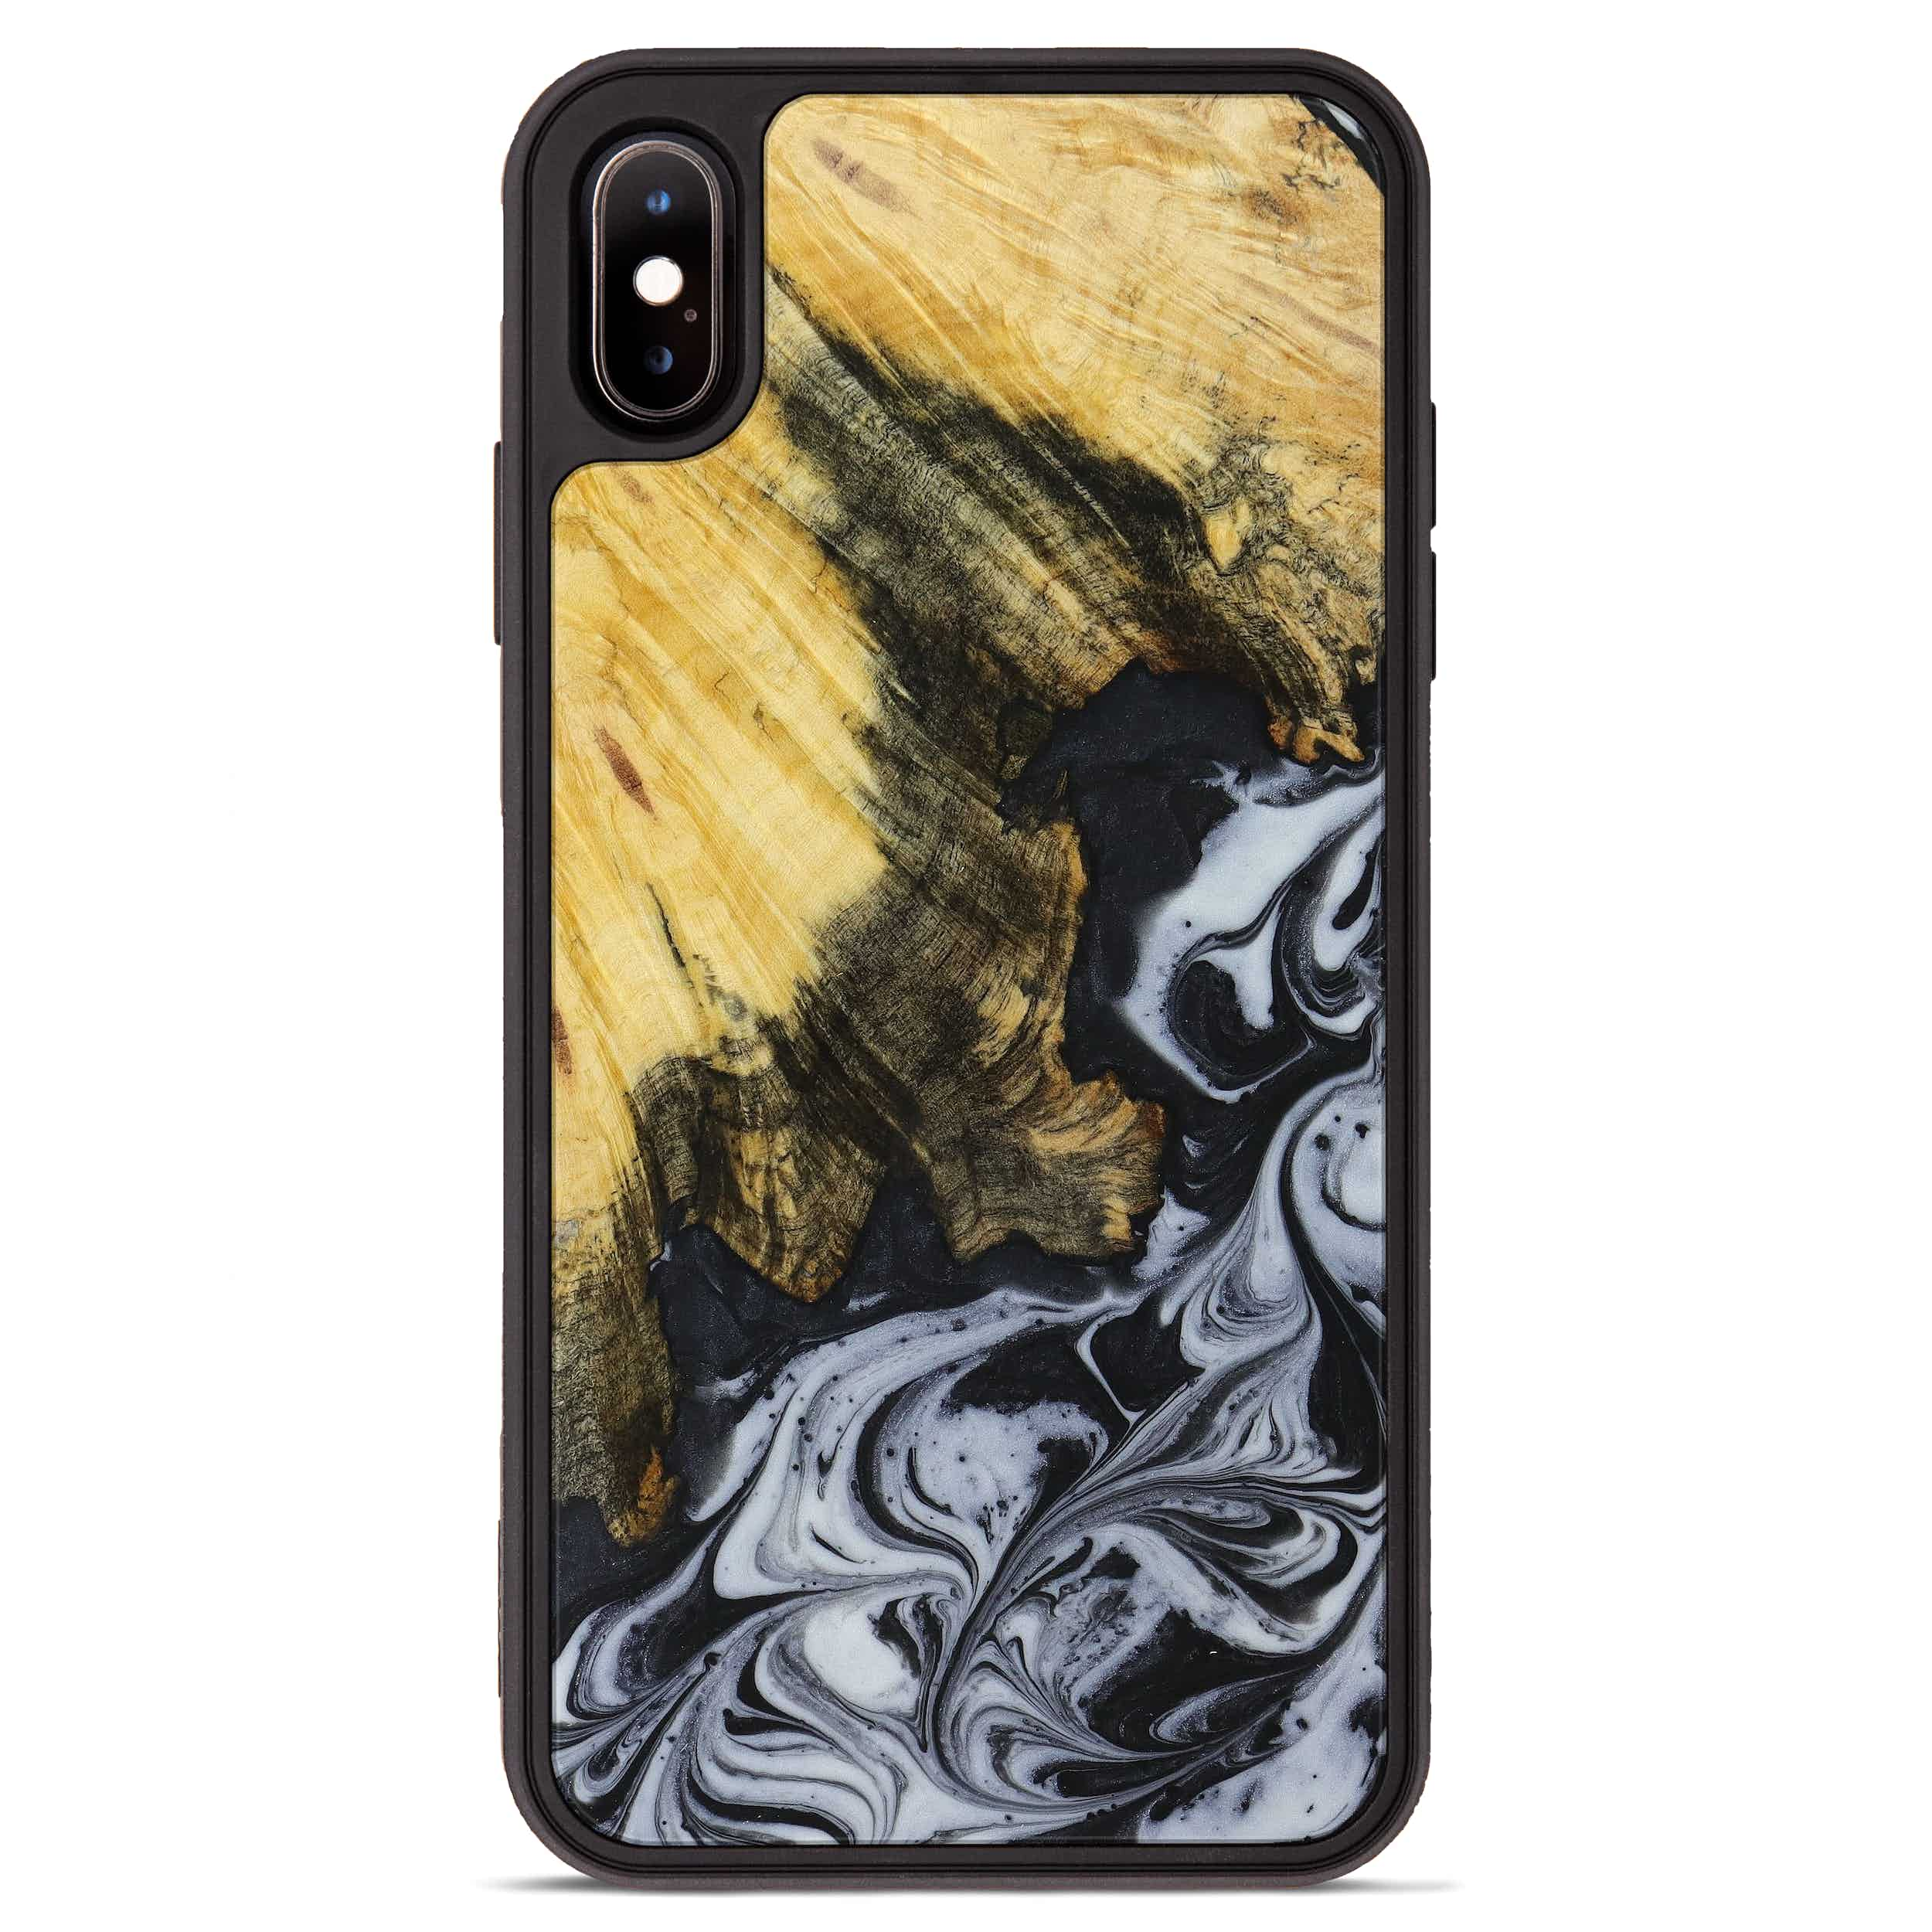 iPhone Xs Max Wood+Resin Phone Case - Rochelle (Black & White, 397353)